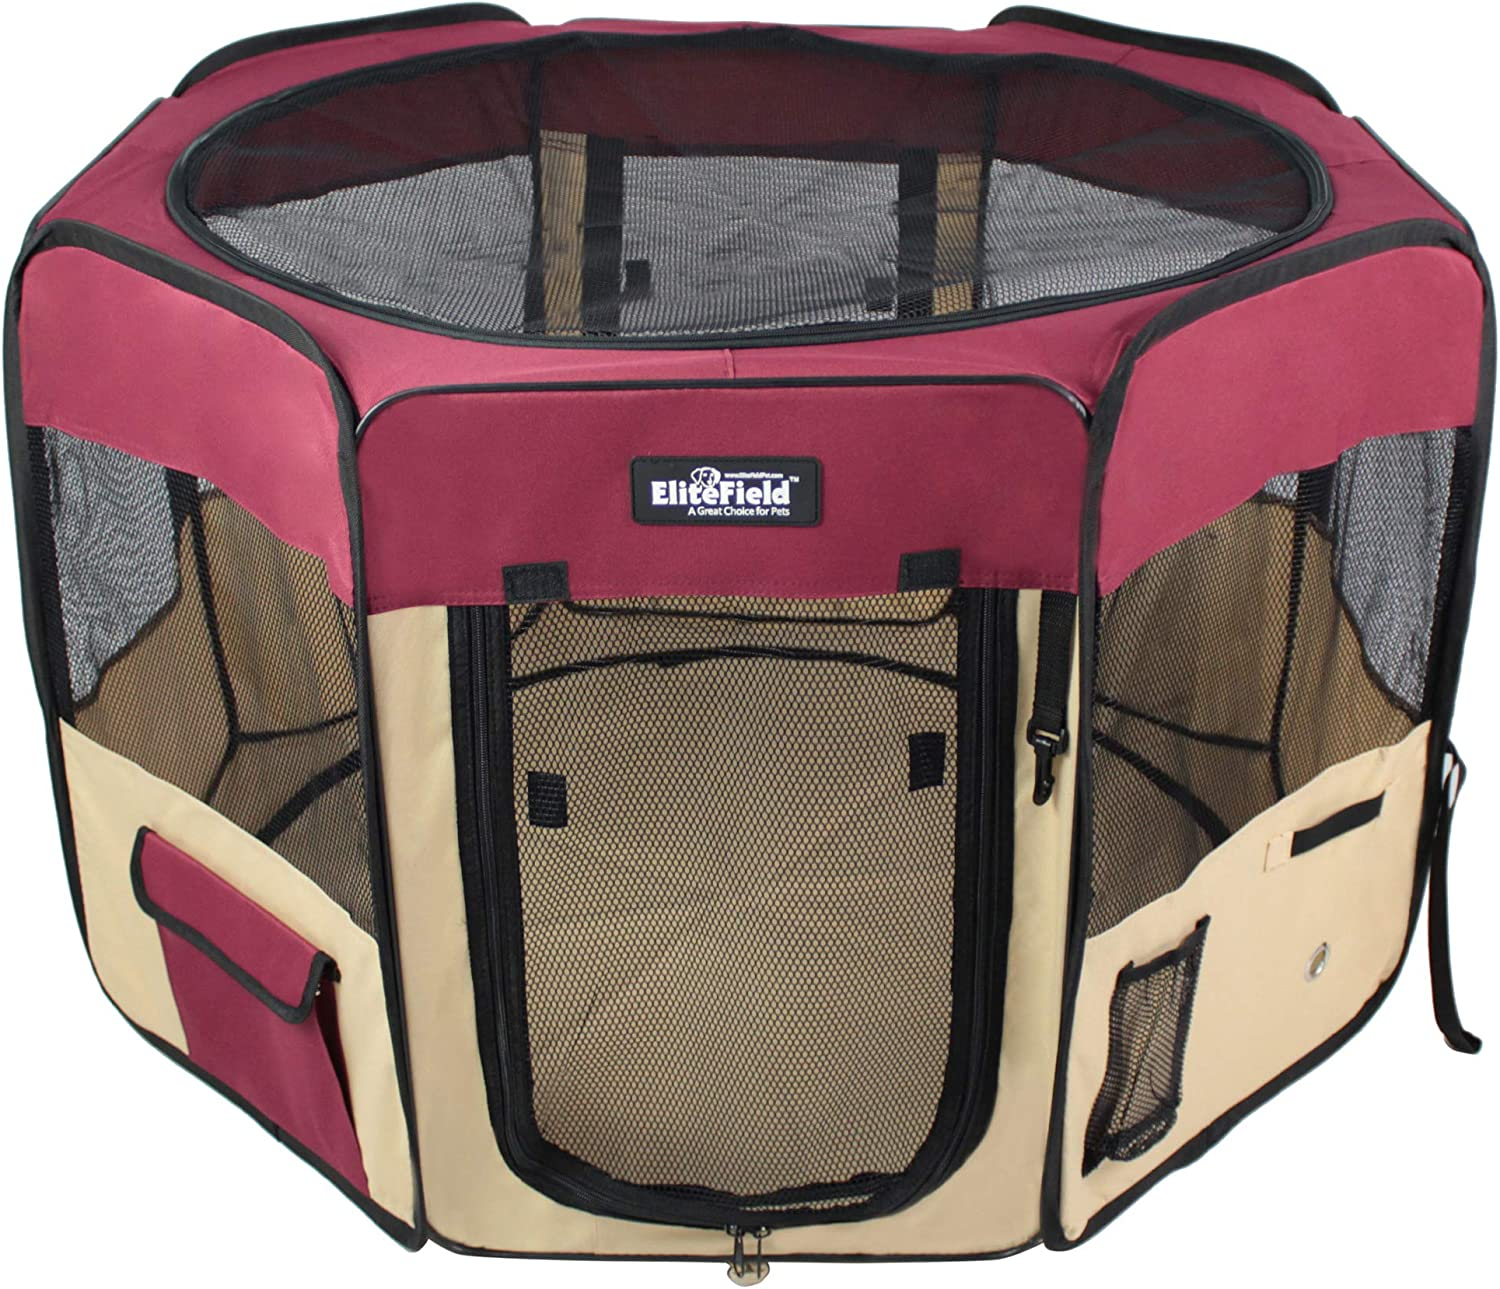 EliteField 2-Door Soft Pet Playpen (2 Year Warranty), Exercise Pen, Multiple Sizes and Colors Available for Dogs, Cats and Other Pets